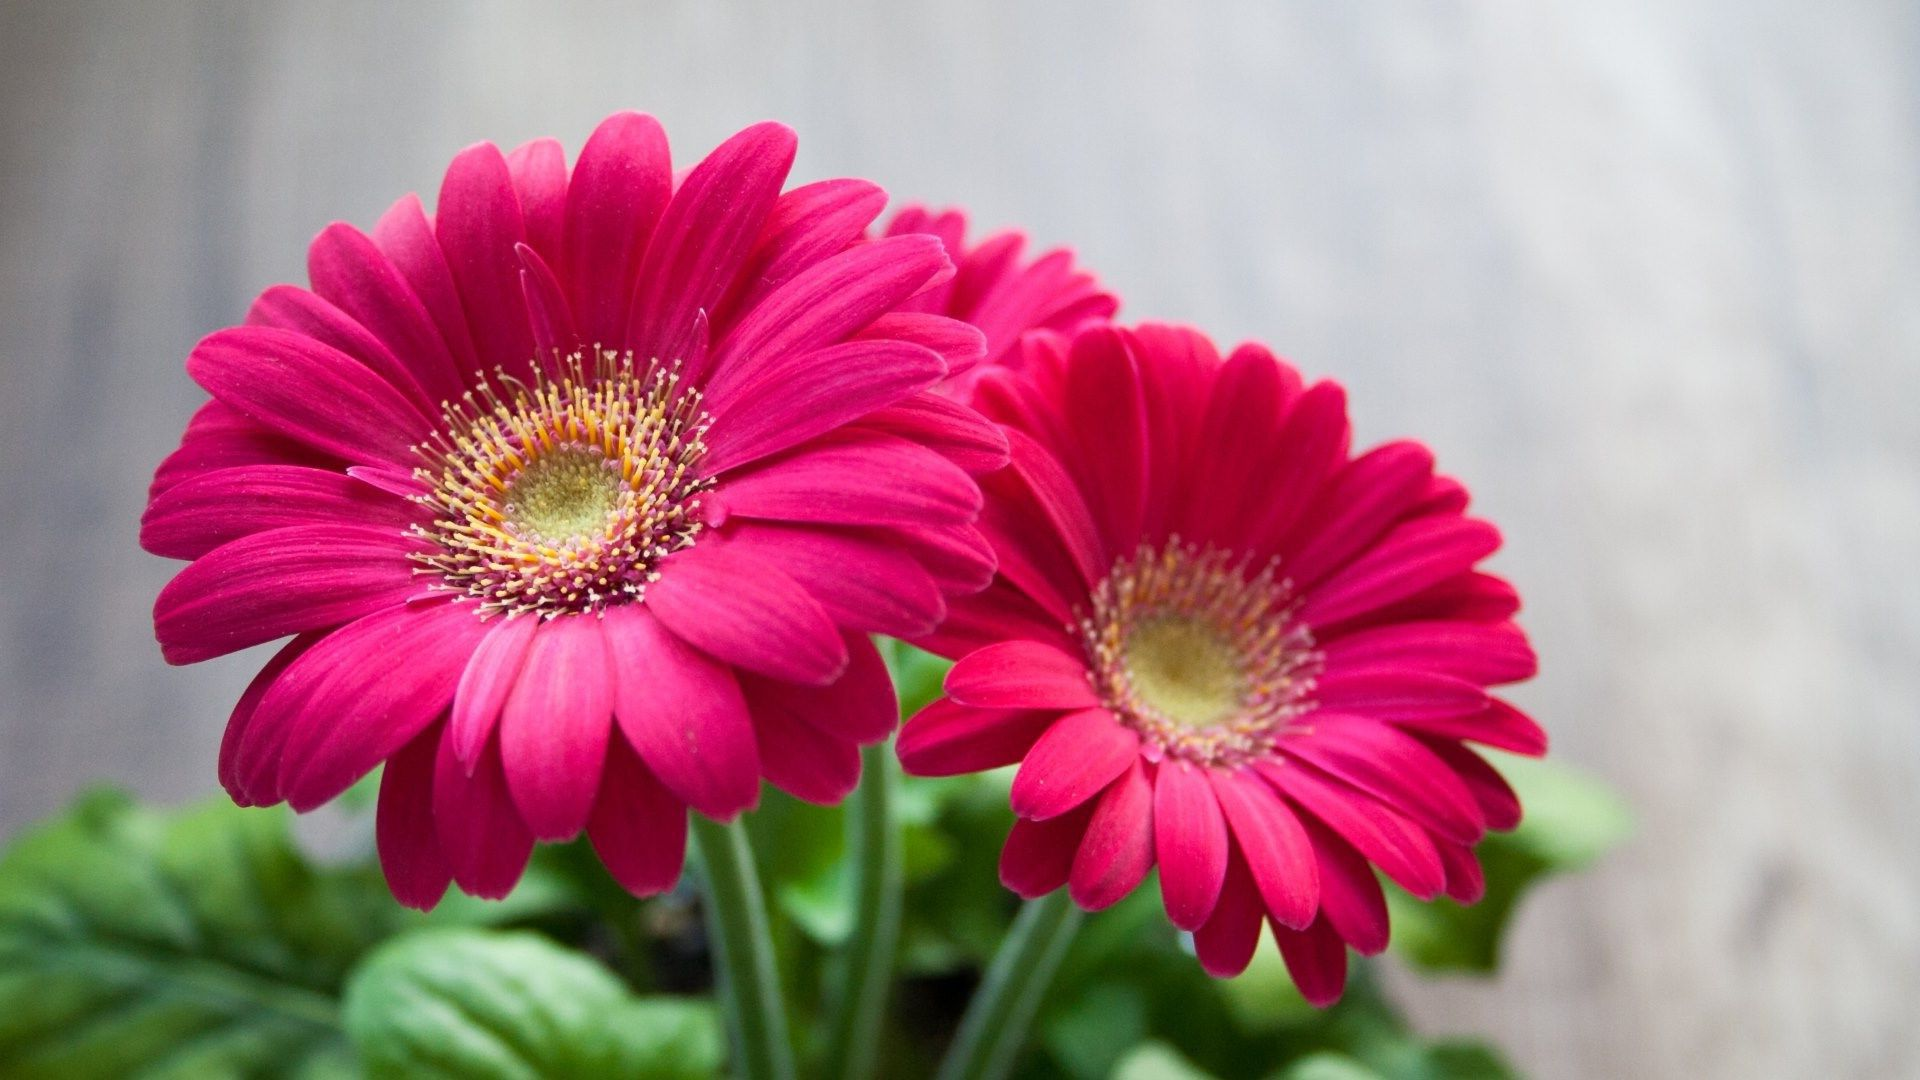 Best HD Wallpapers for Laptop 1080p with Pink Daisy Flower